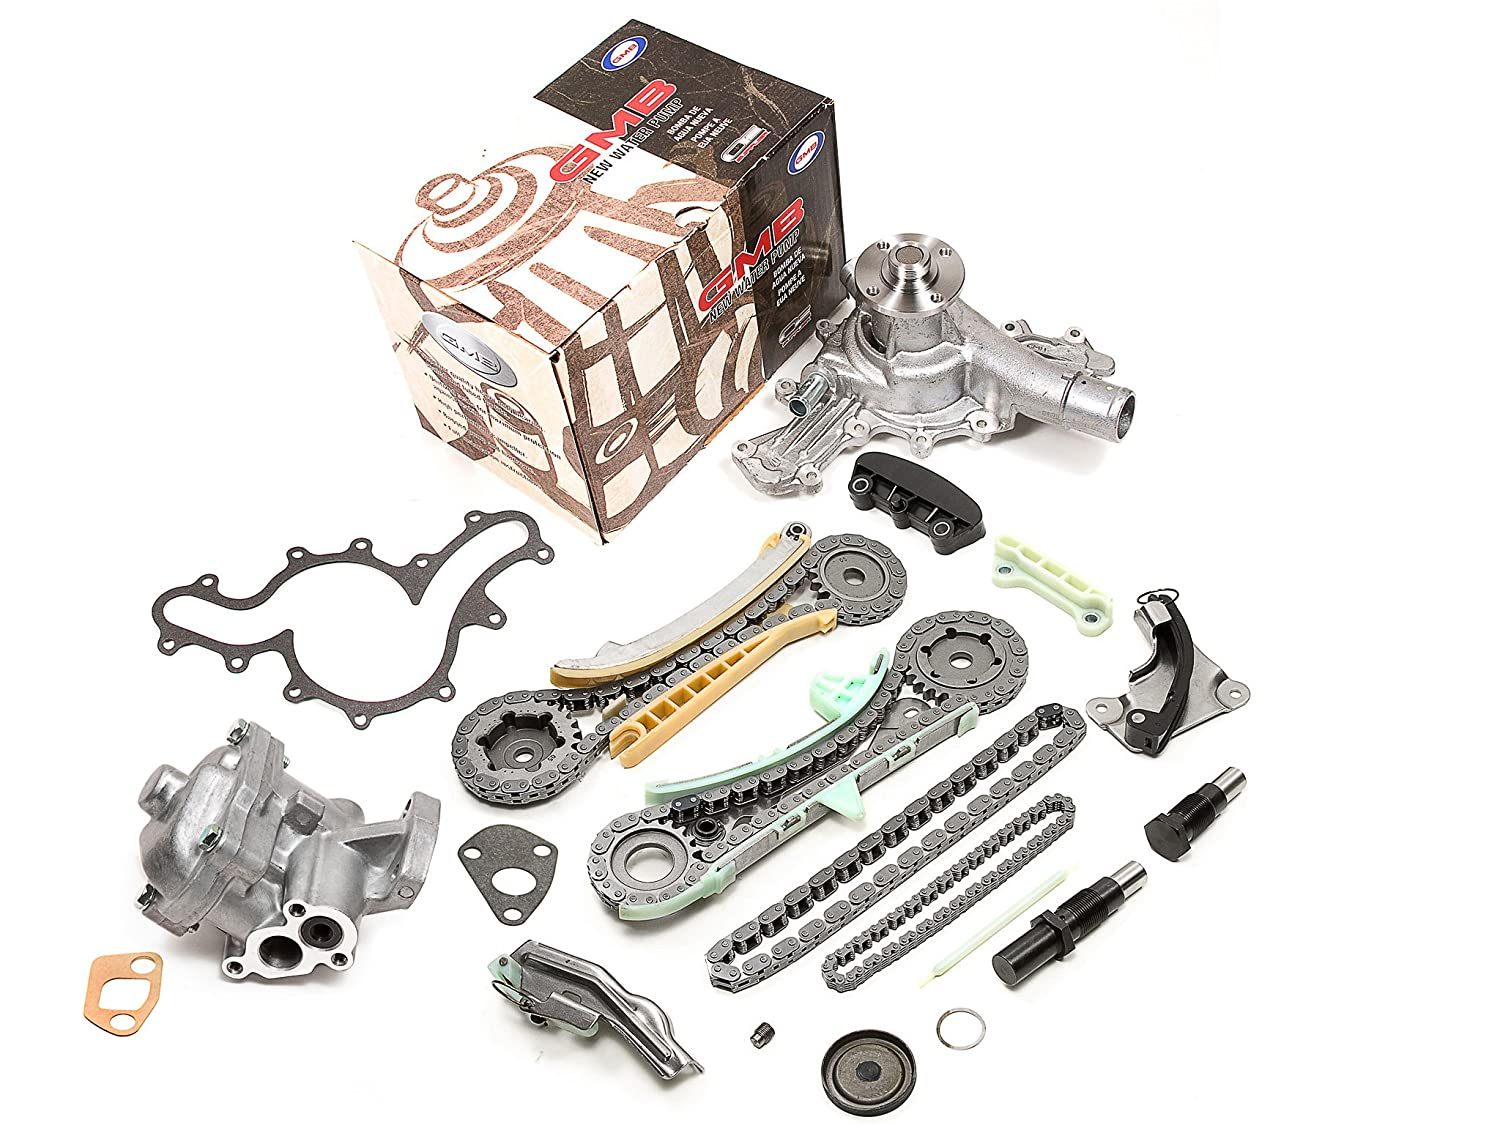 Amazon evergreen tk20700wop ford explorer ranger mazda mercury amazon evergreen tk20700wop ford explorer ranger mazda mercury 40l sohc timing chain kit oil pump and water pump with gears automotive fandeluxe Images